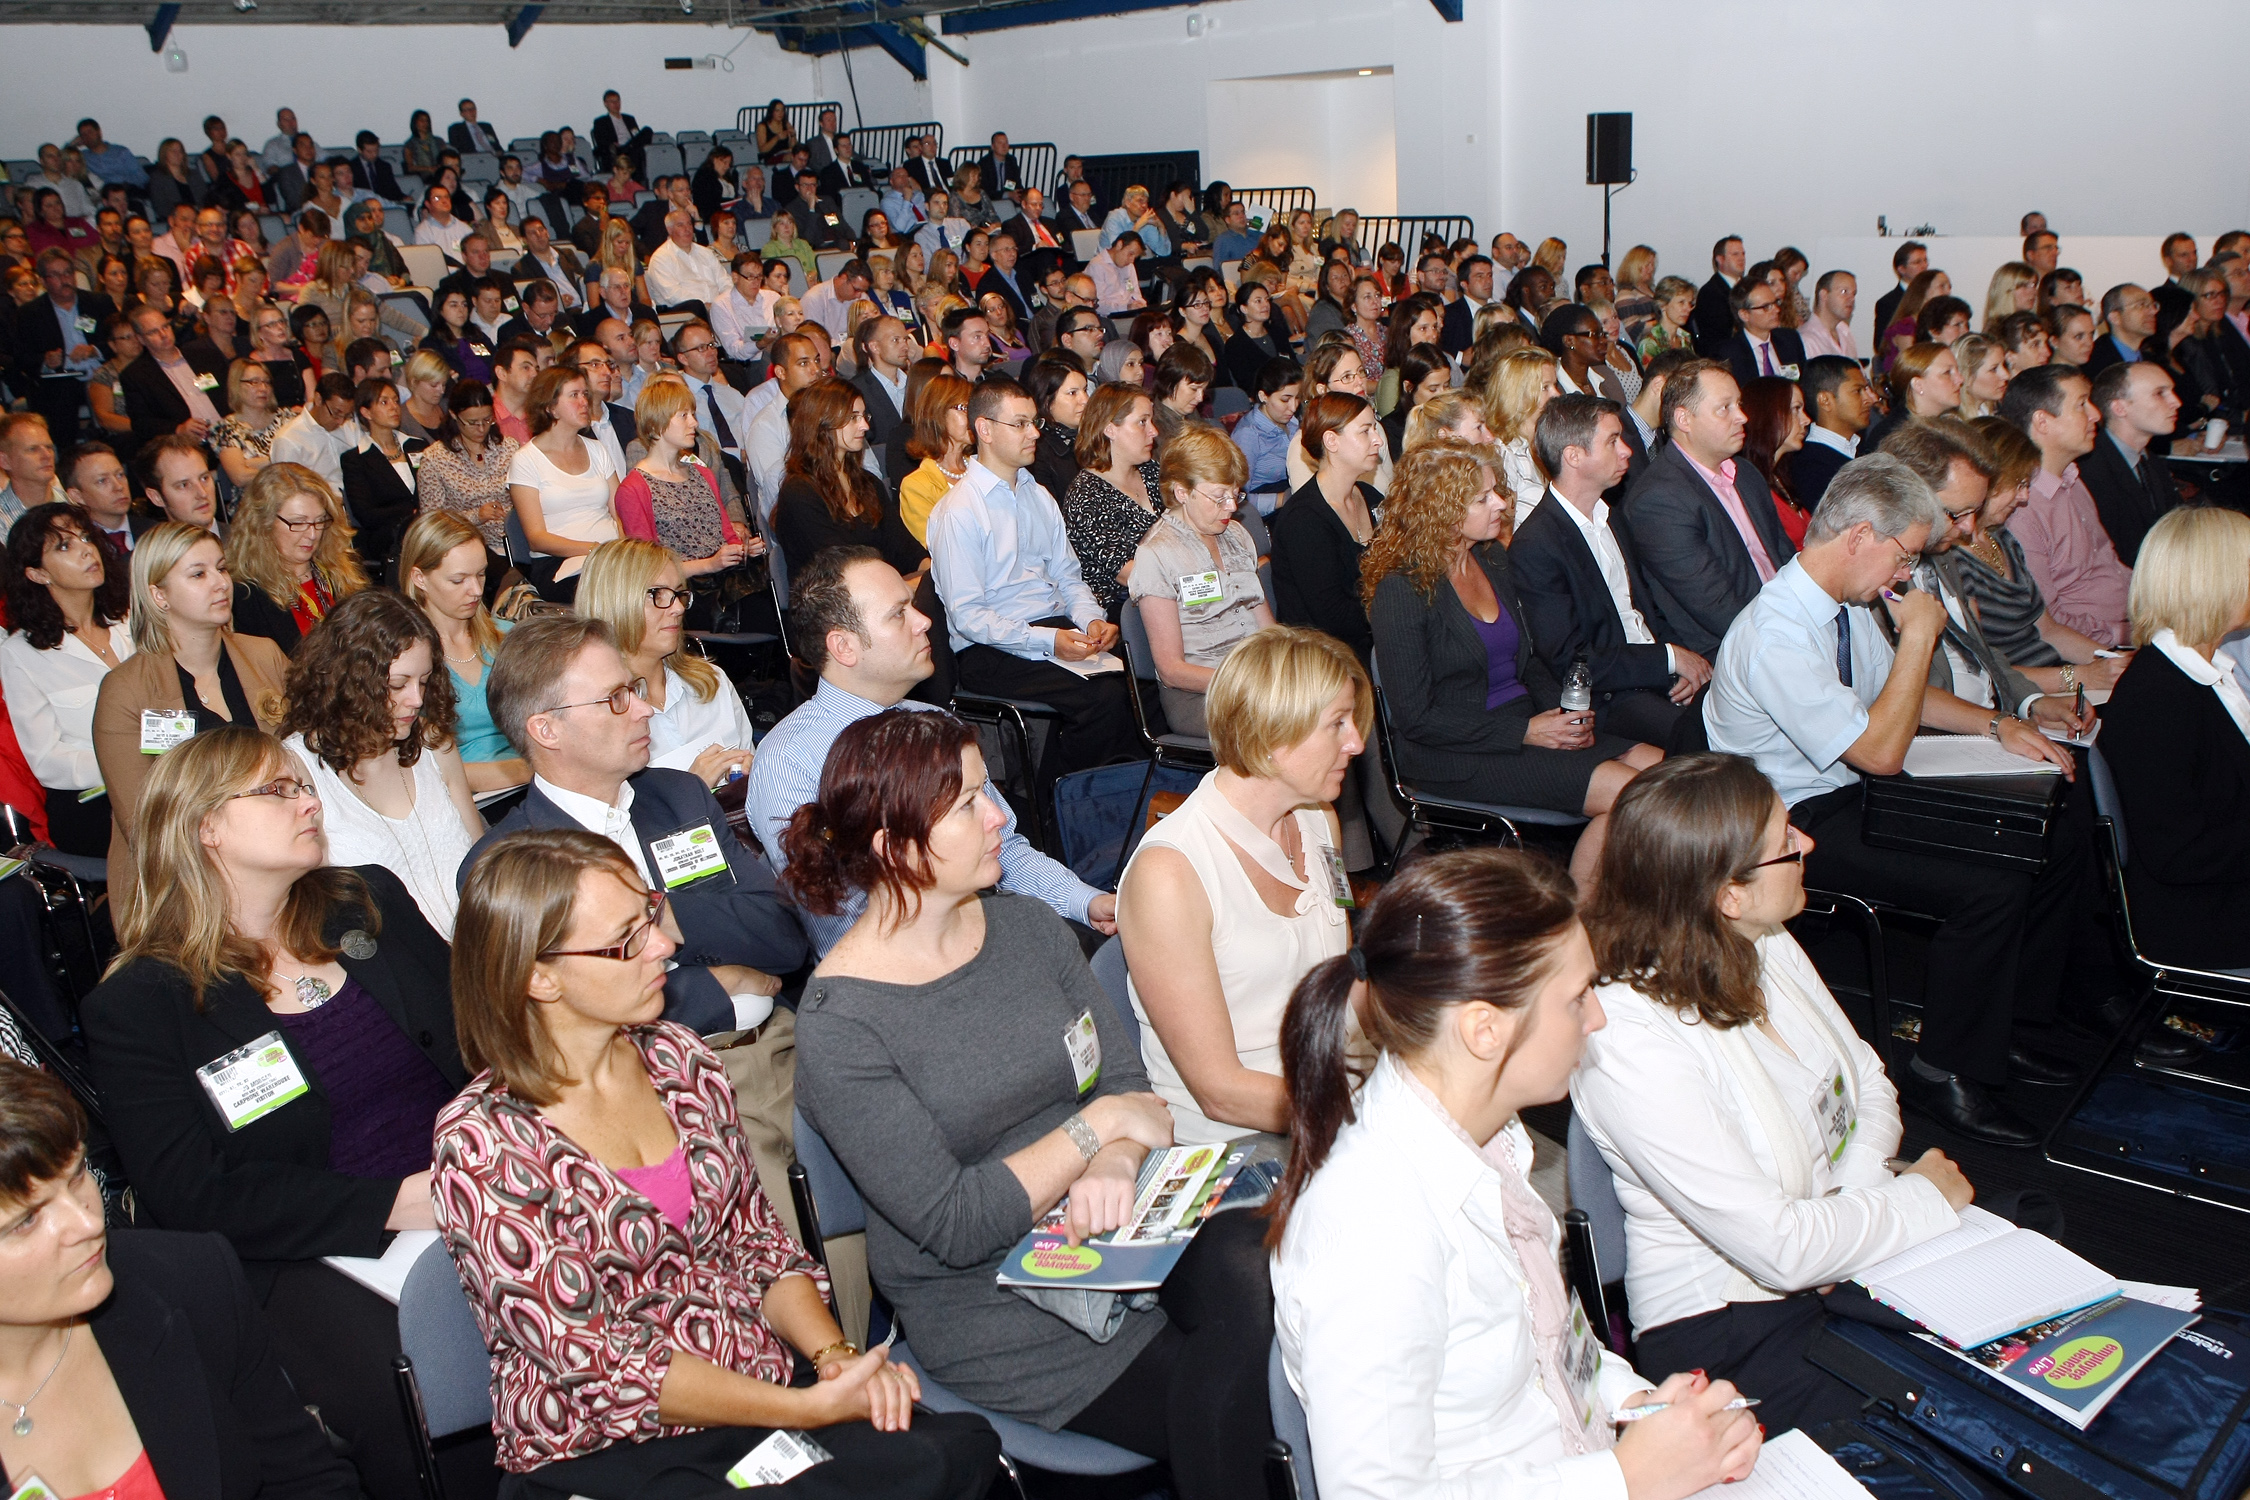 Employee Benefits Live 2011